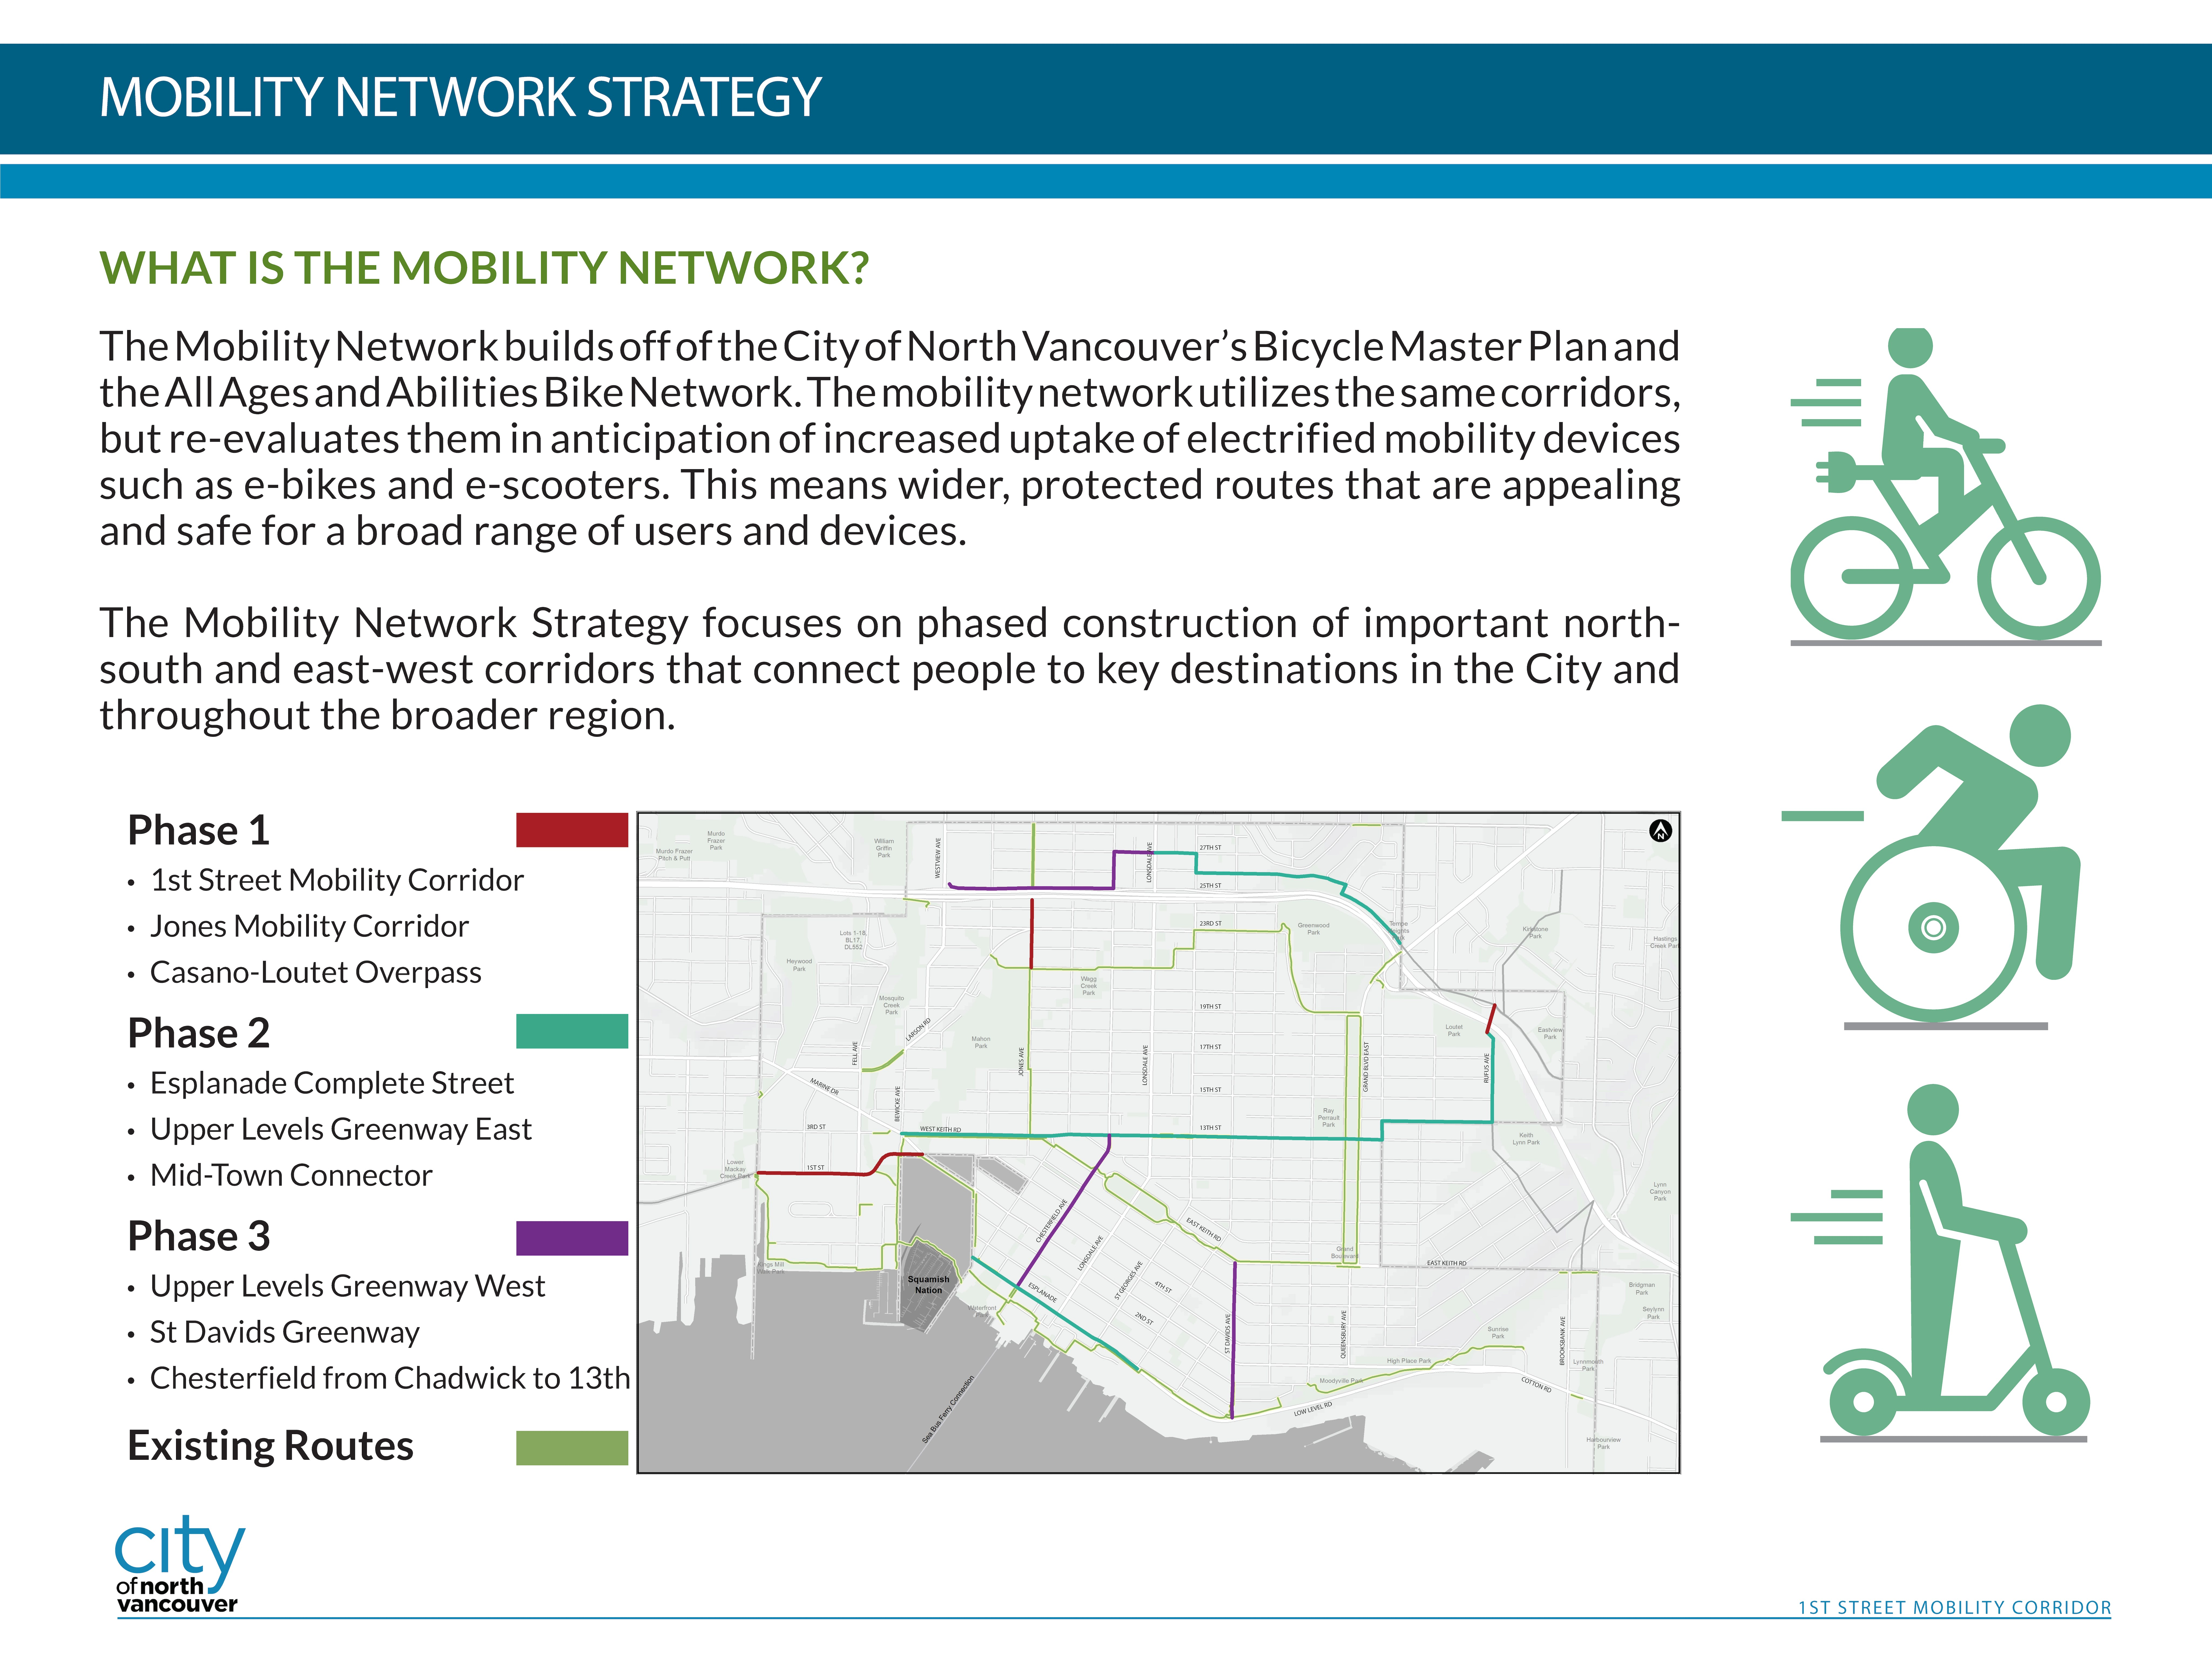 1st Street Mobility Corridor - Page 3